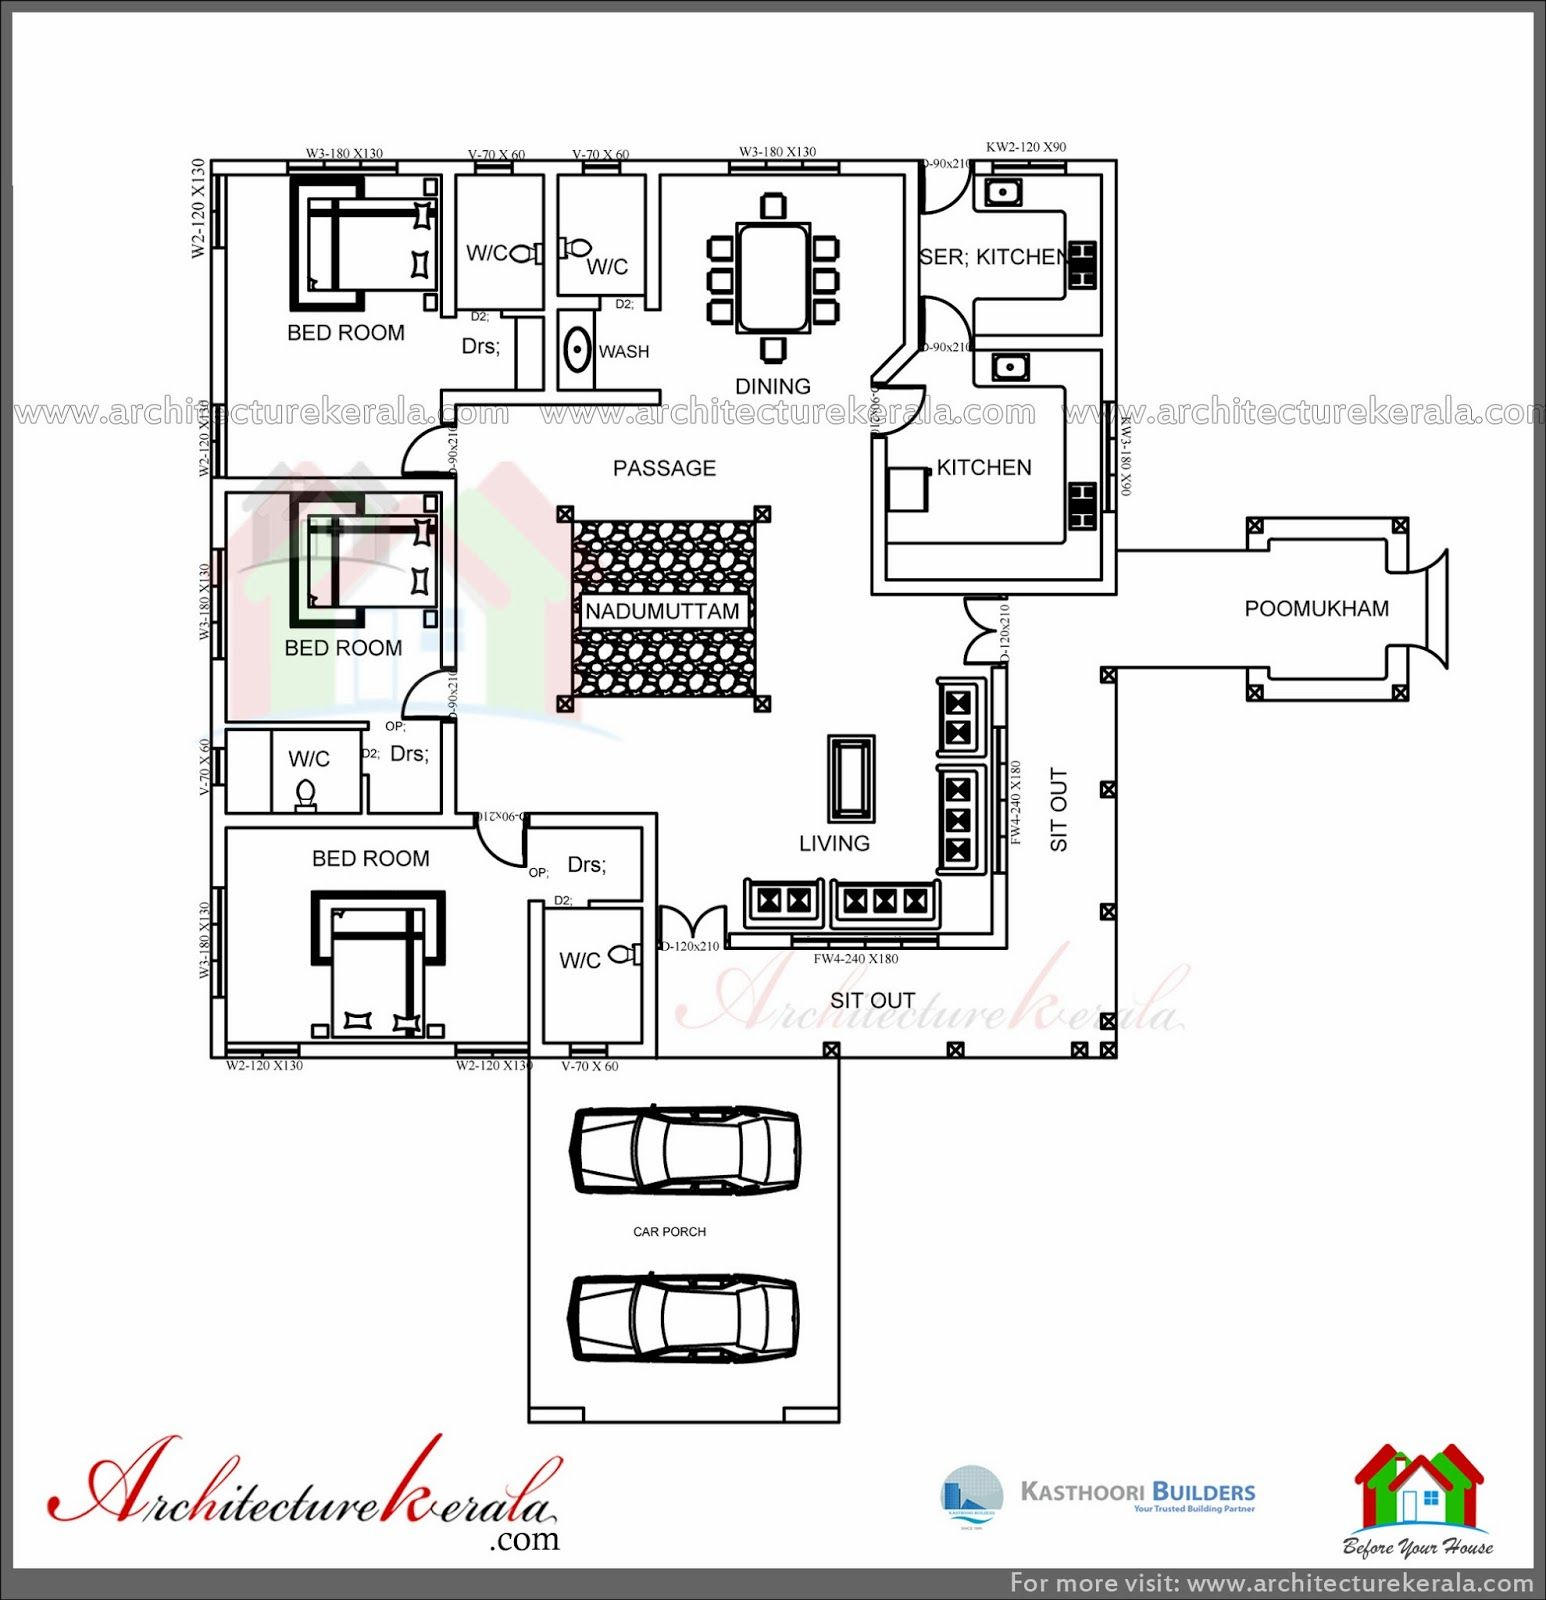 Architecture kerala traditional house plan with for Traditional house plans in kerala